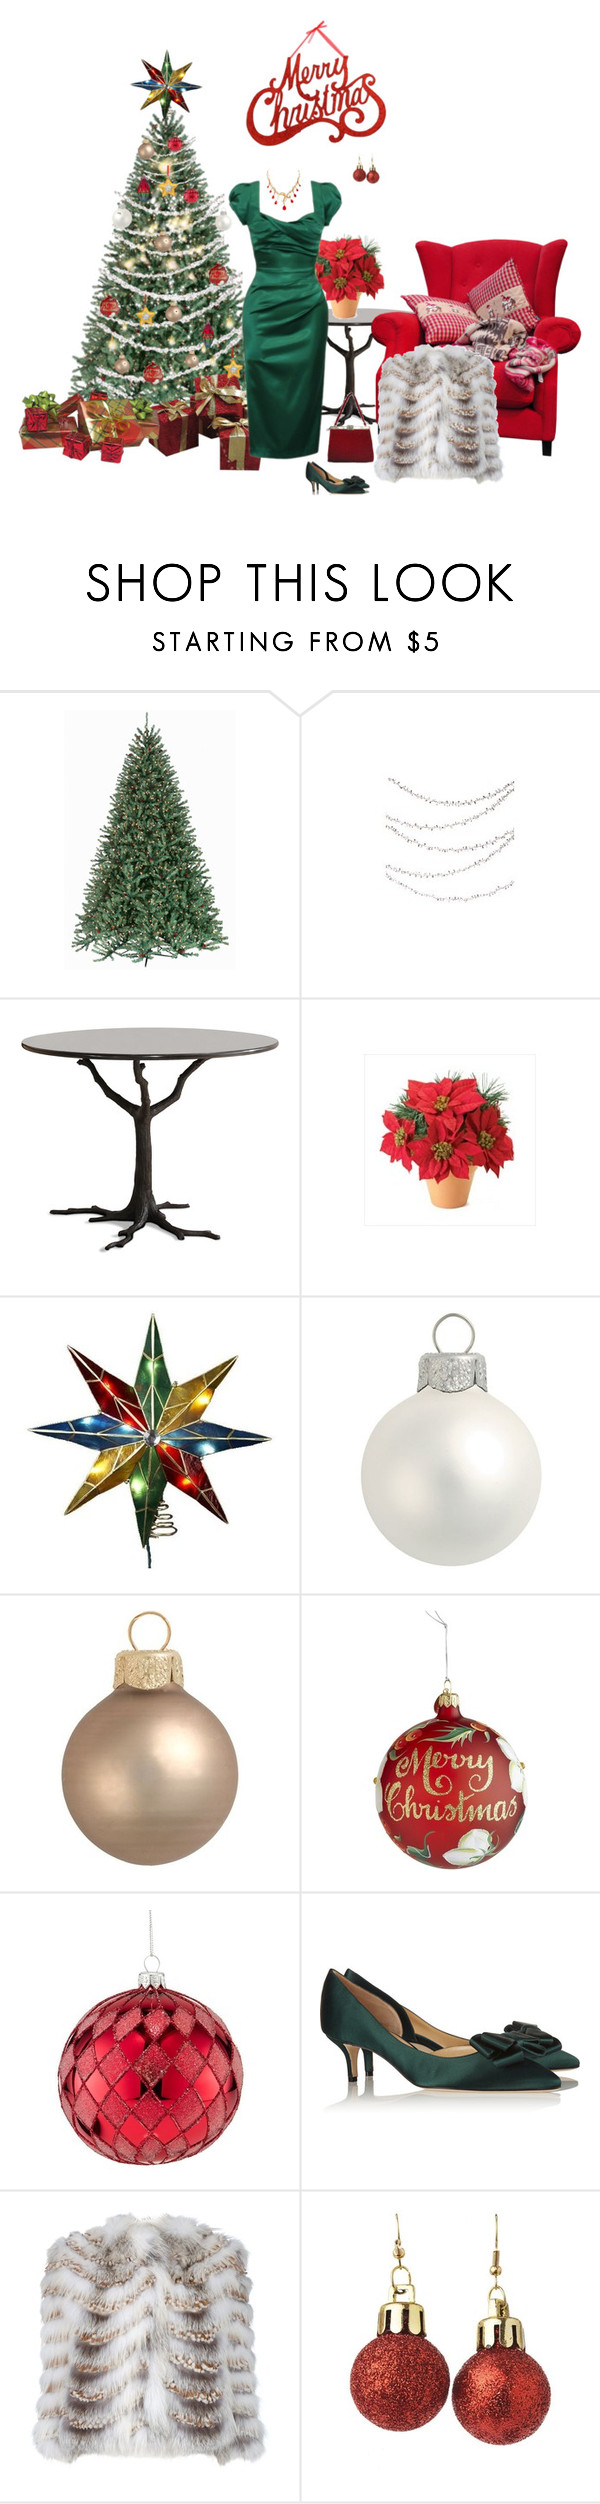 """Untitled #6443"" by msdanasue ❤ liked on Polyvore featuring Crate and Barrel, Kurt Adler, Pier 1 Imports, Department 56, Waterford, Oscar de la Renta, Ermanno Scervino and Léon Hatot"